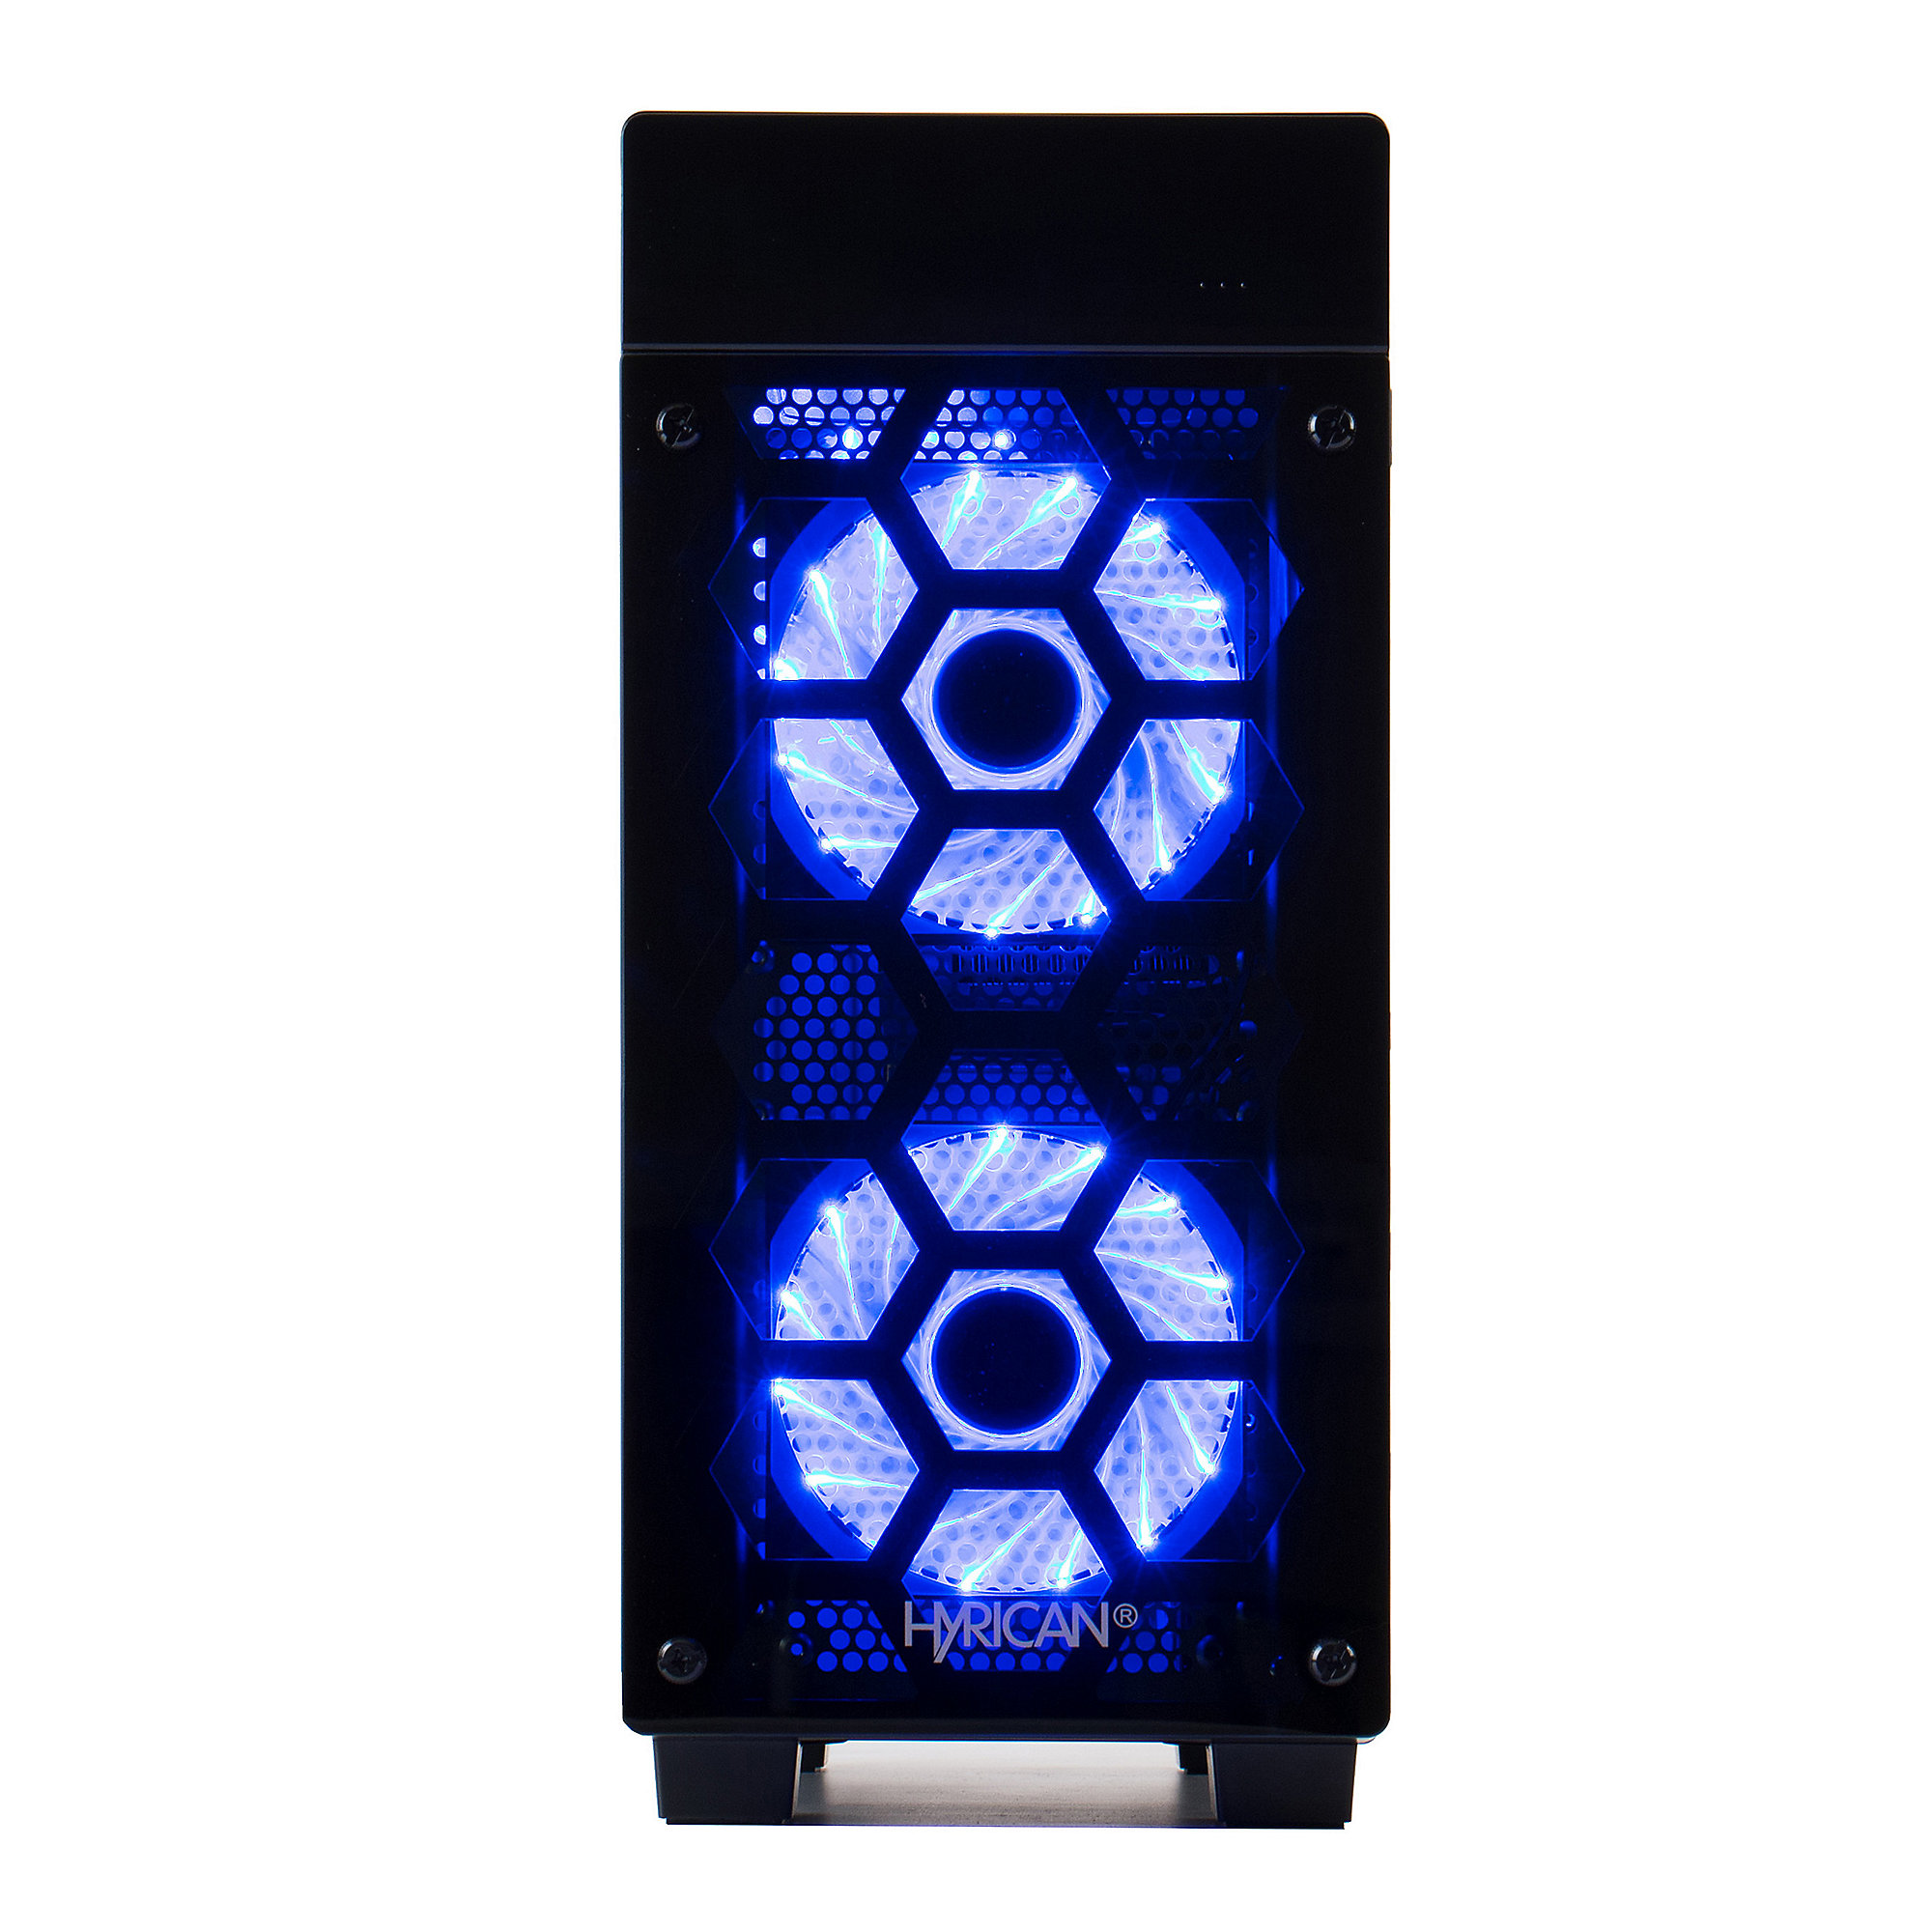 Hyrican Striker PC blue 5973 i7+8700 16GB/2TB 500GB SSD GTX 1080 W10